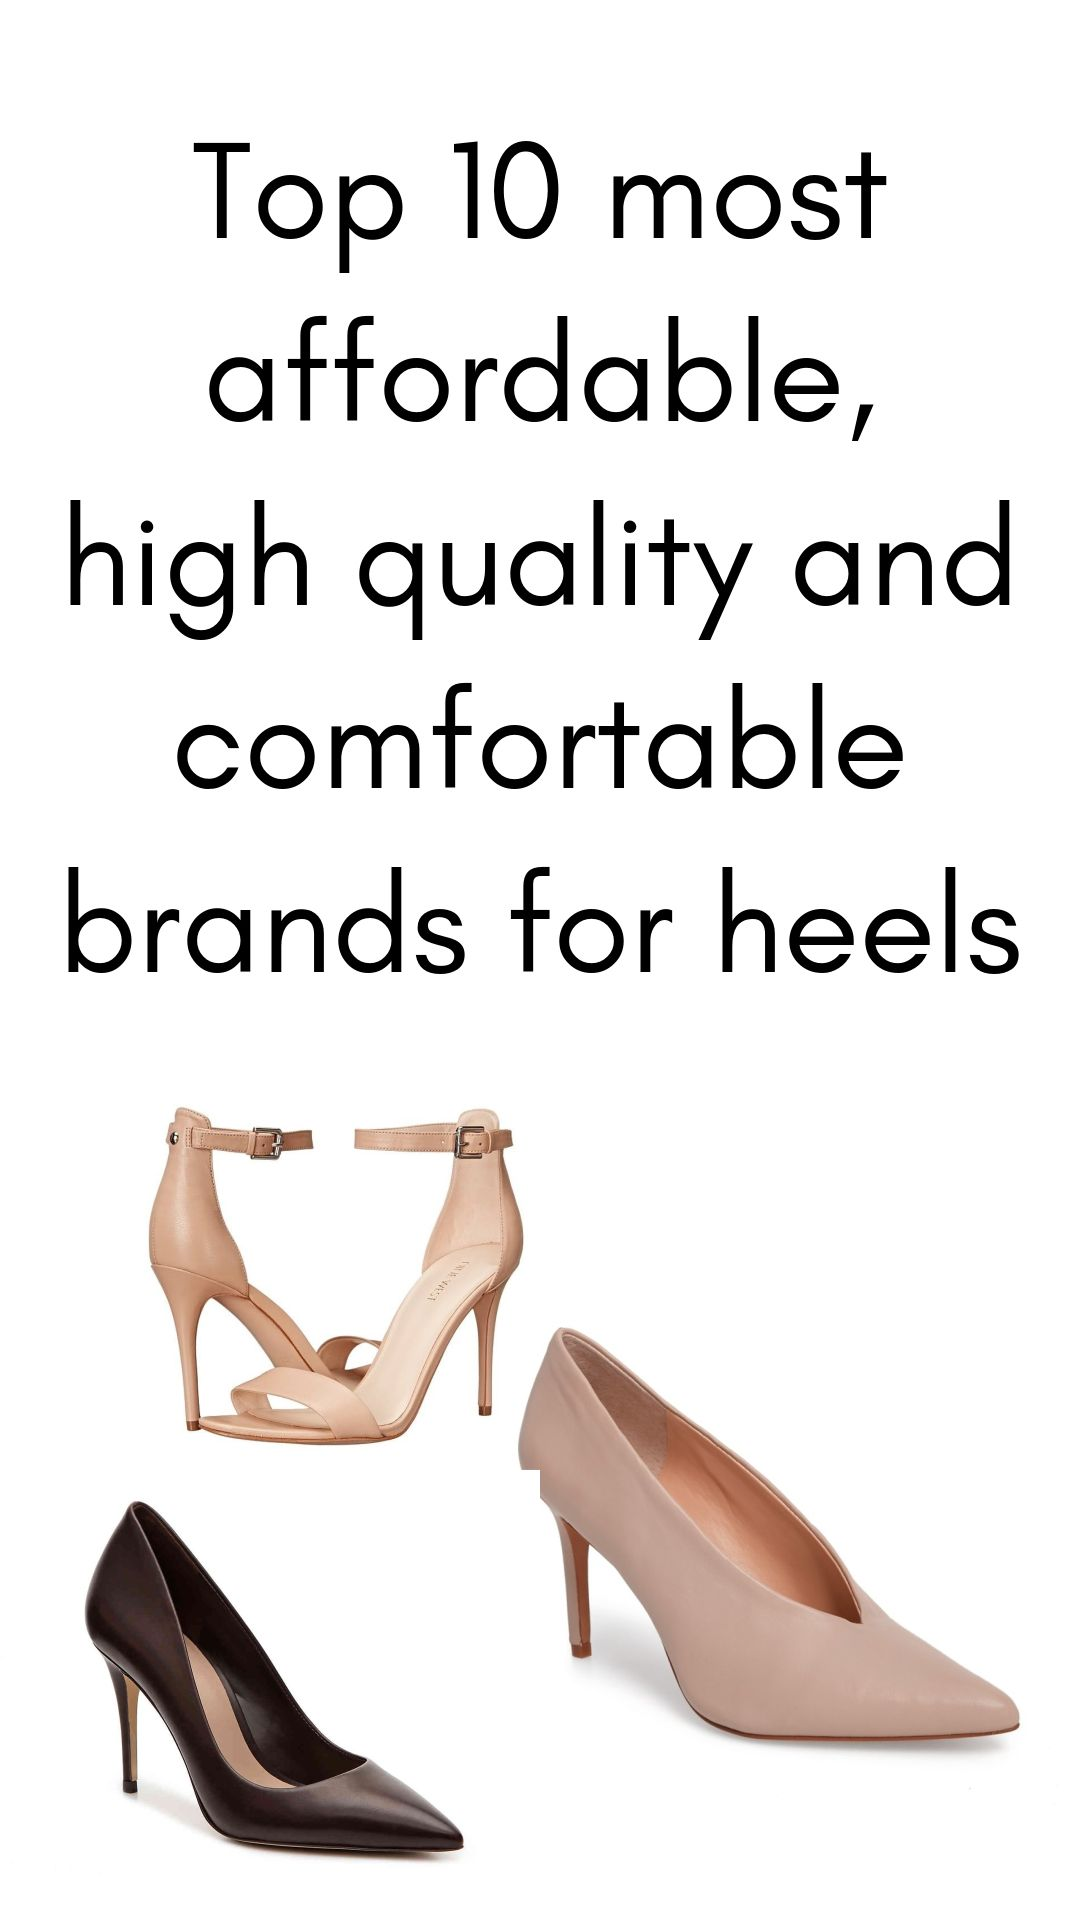 d68c495deb Top 10 most comfortable, high quality and comfortable brands for heels